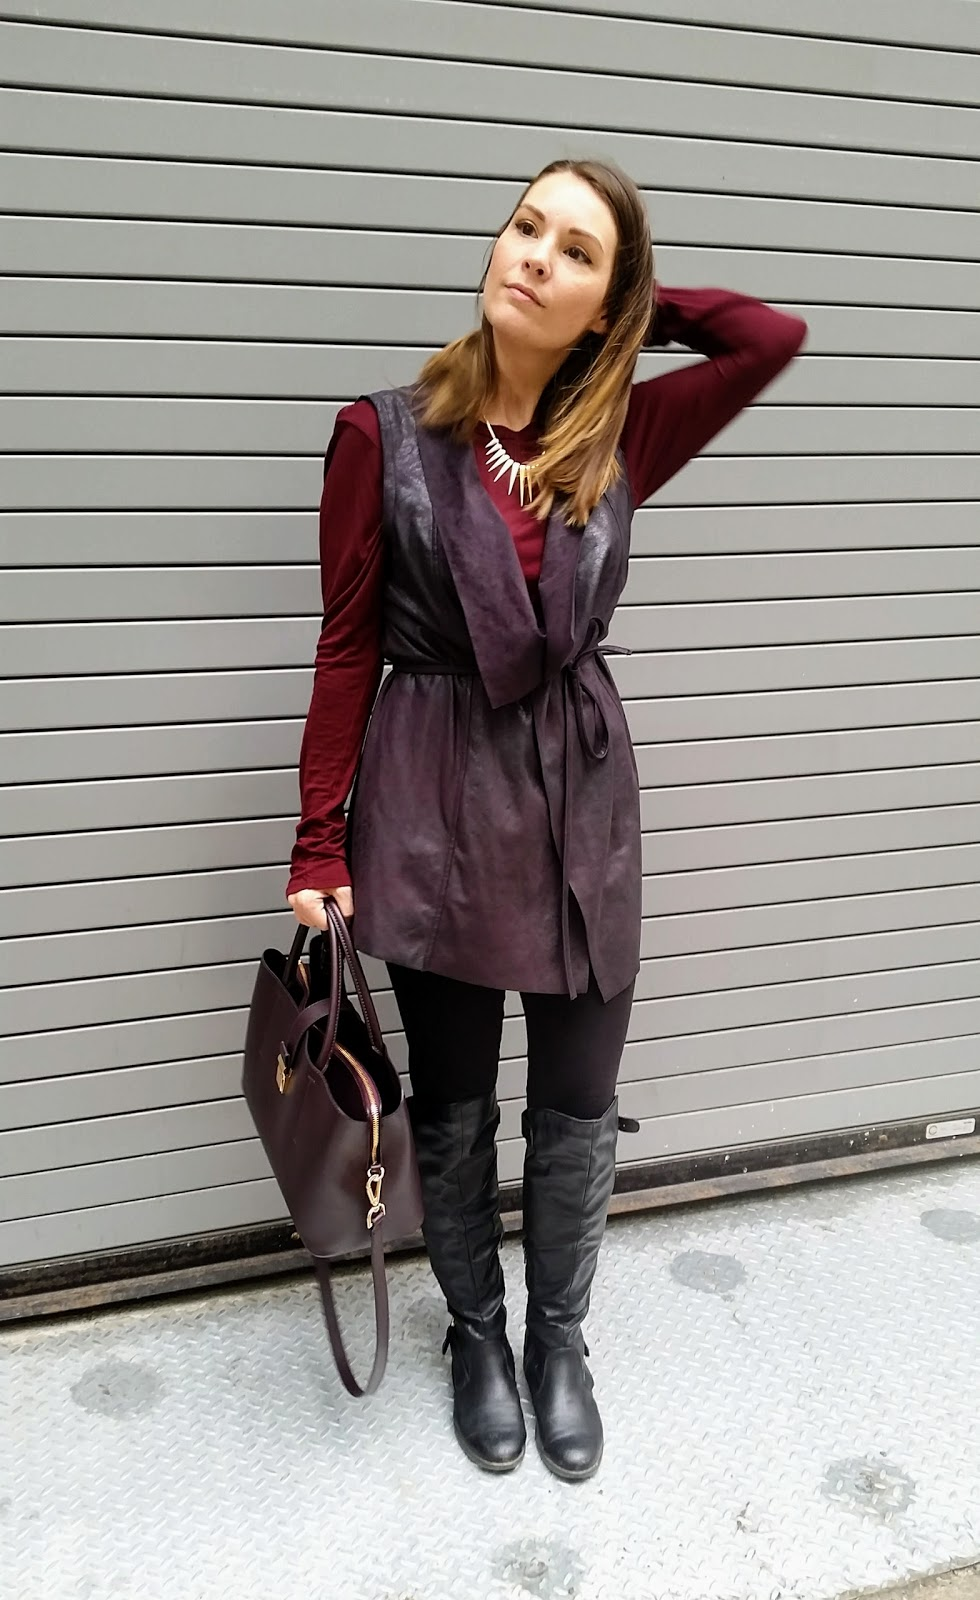 Suede vest and over the knee boots